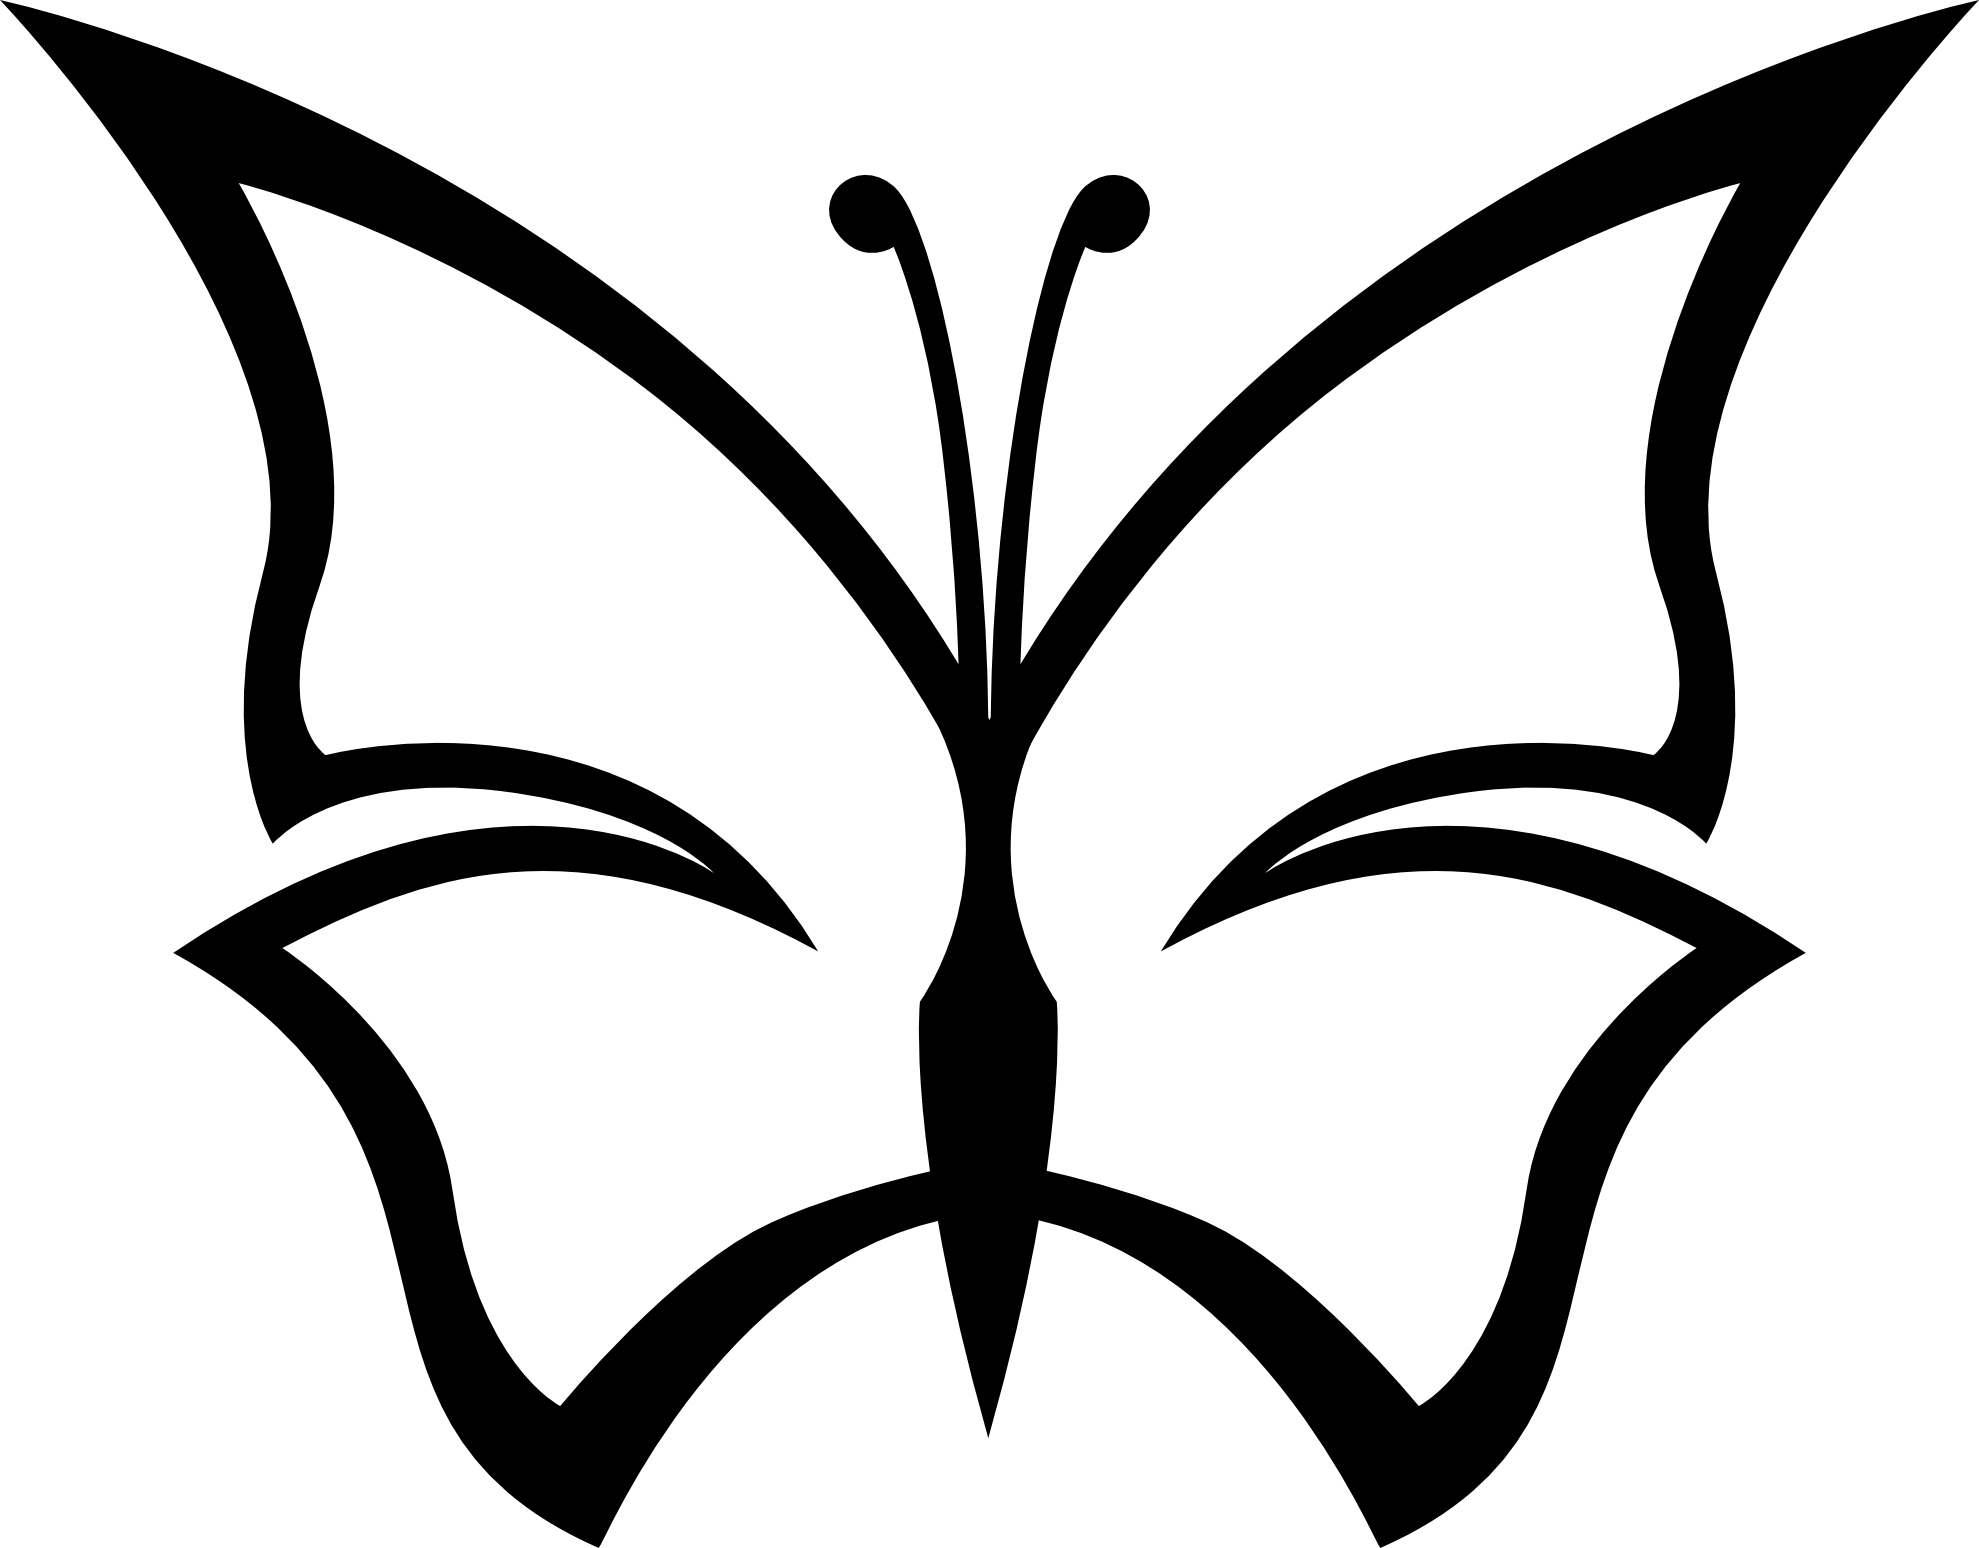 Line Drawing Butterfly Tattoo : Butterfly line drawing clipart best